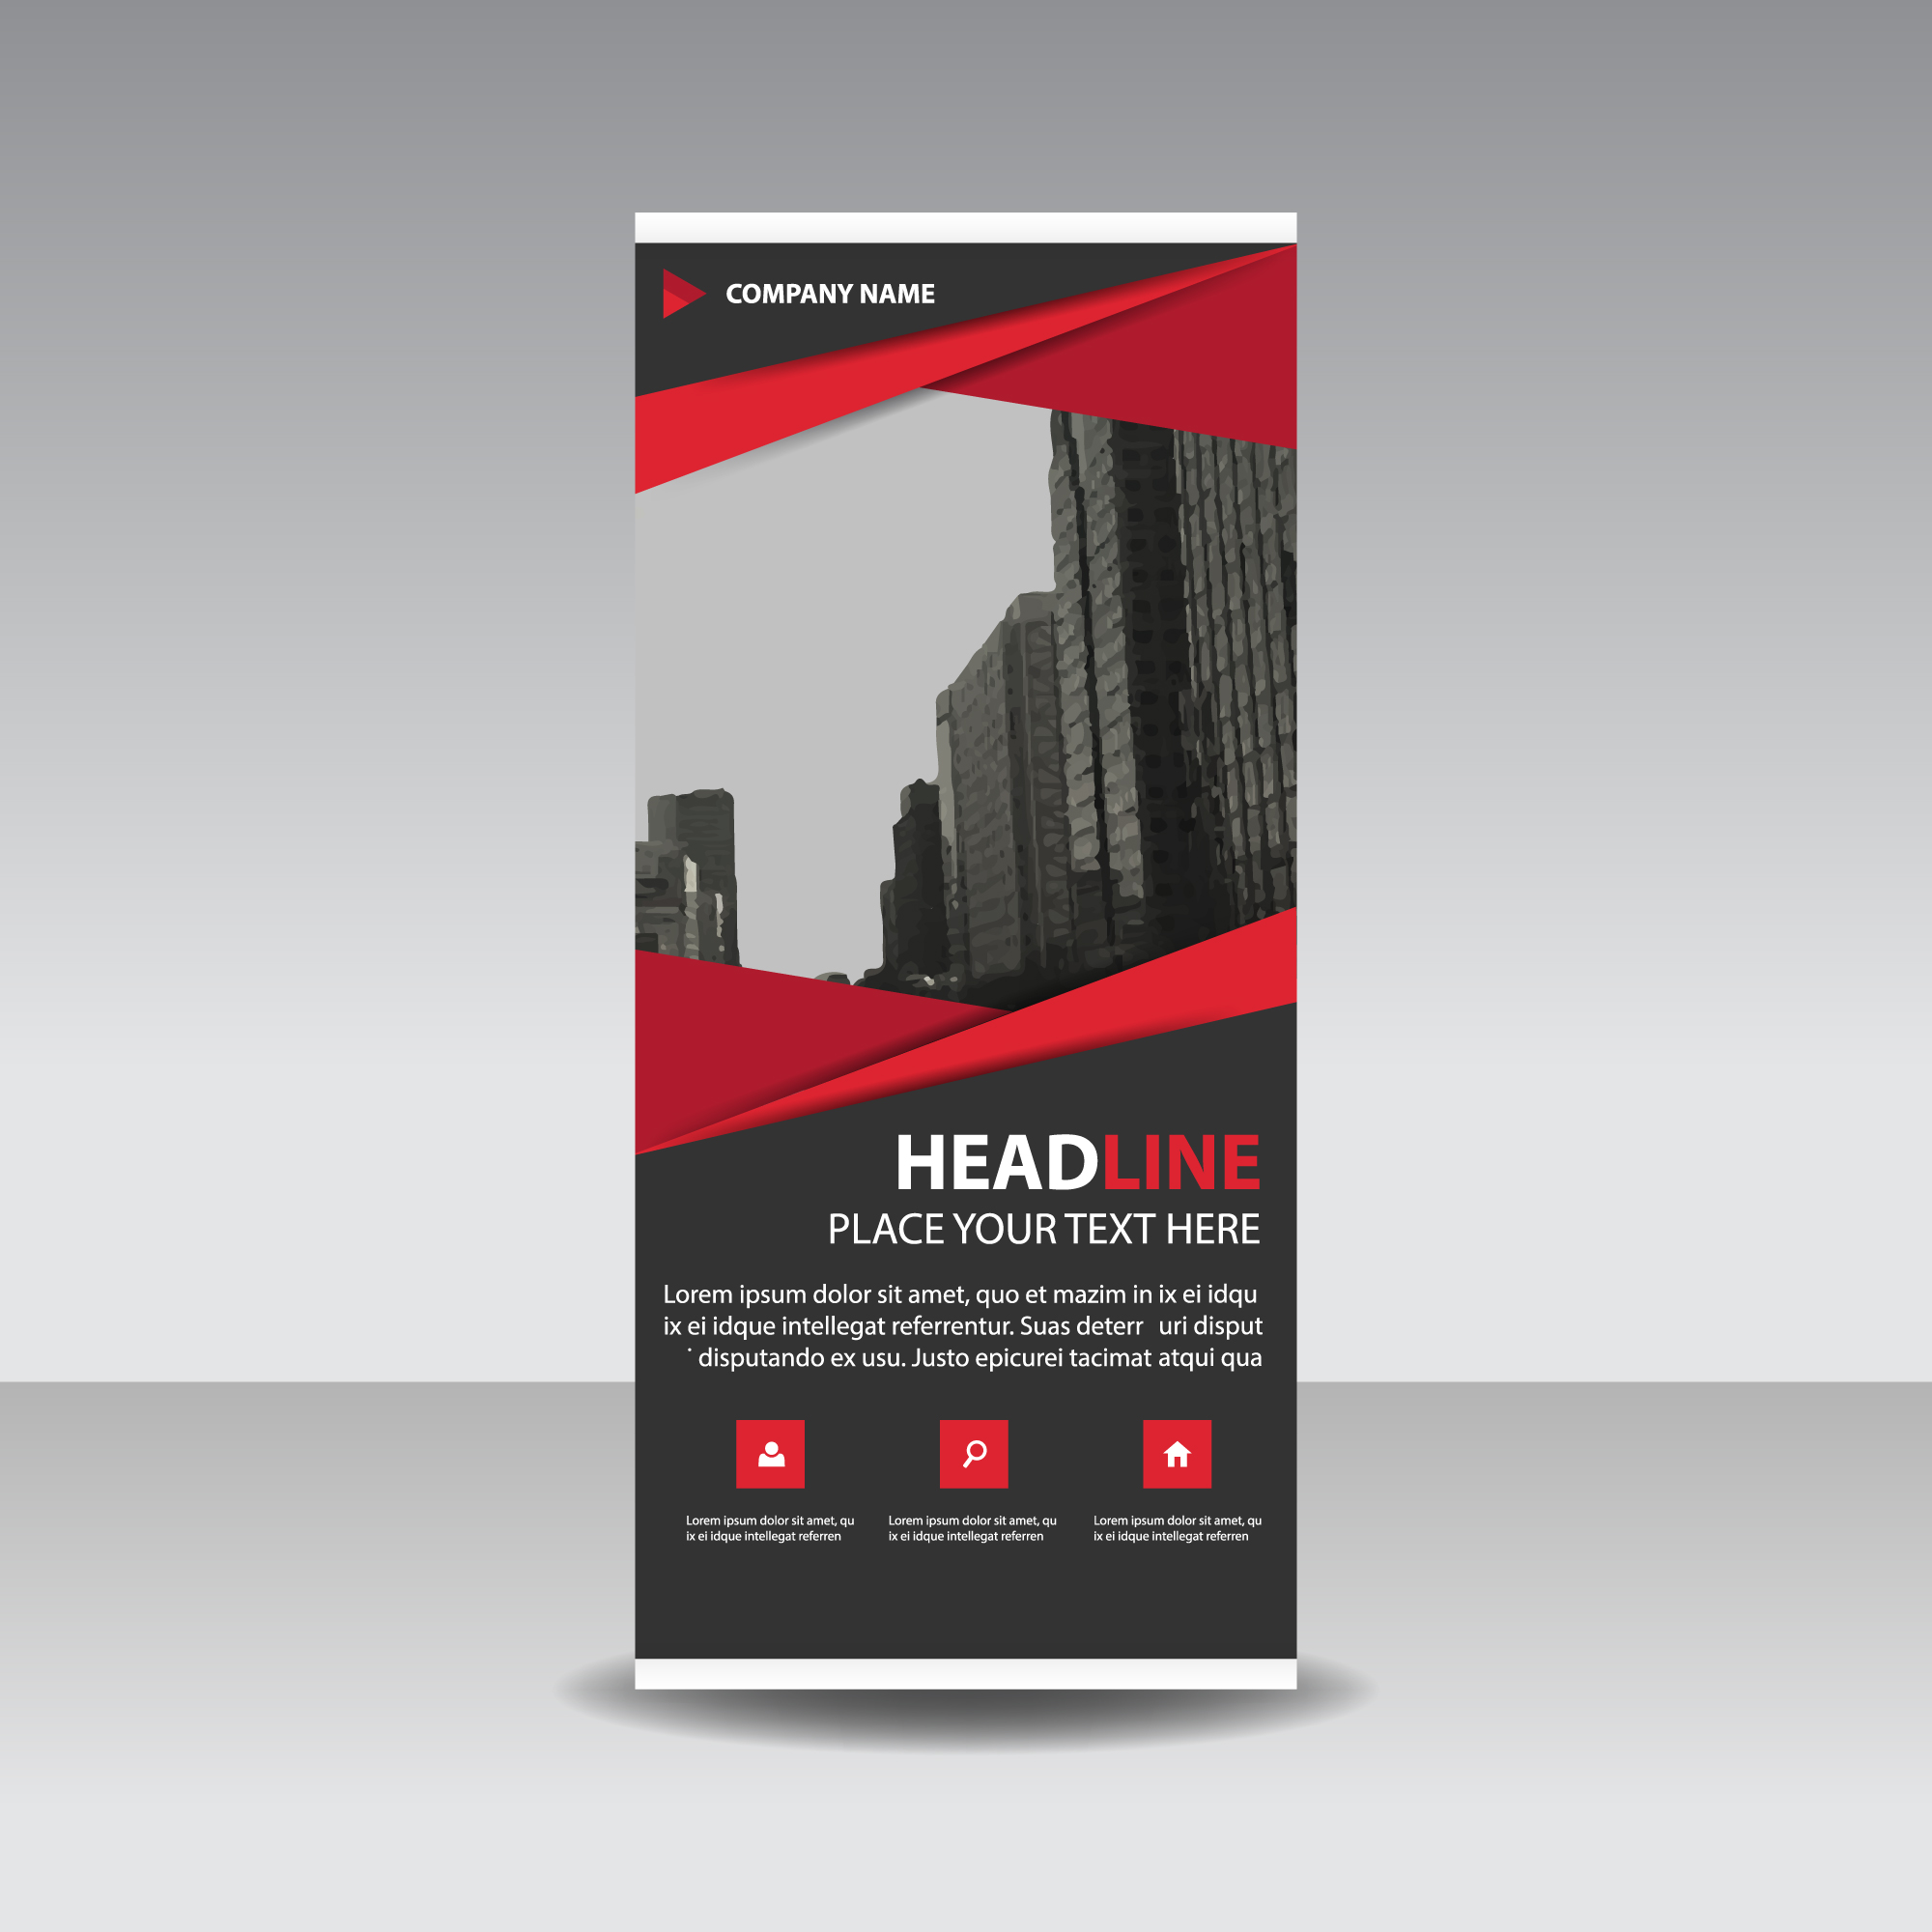 Red creativo roll up banner modelo